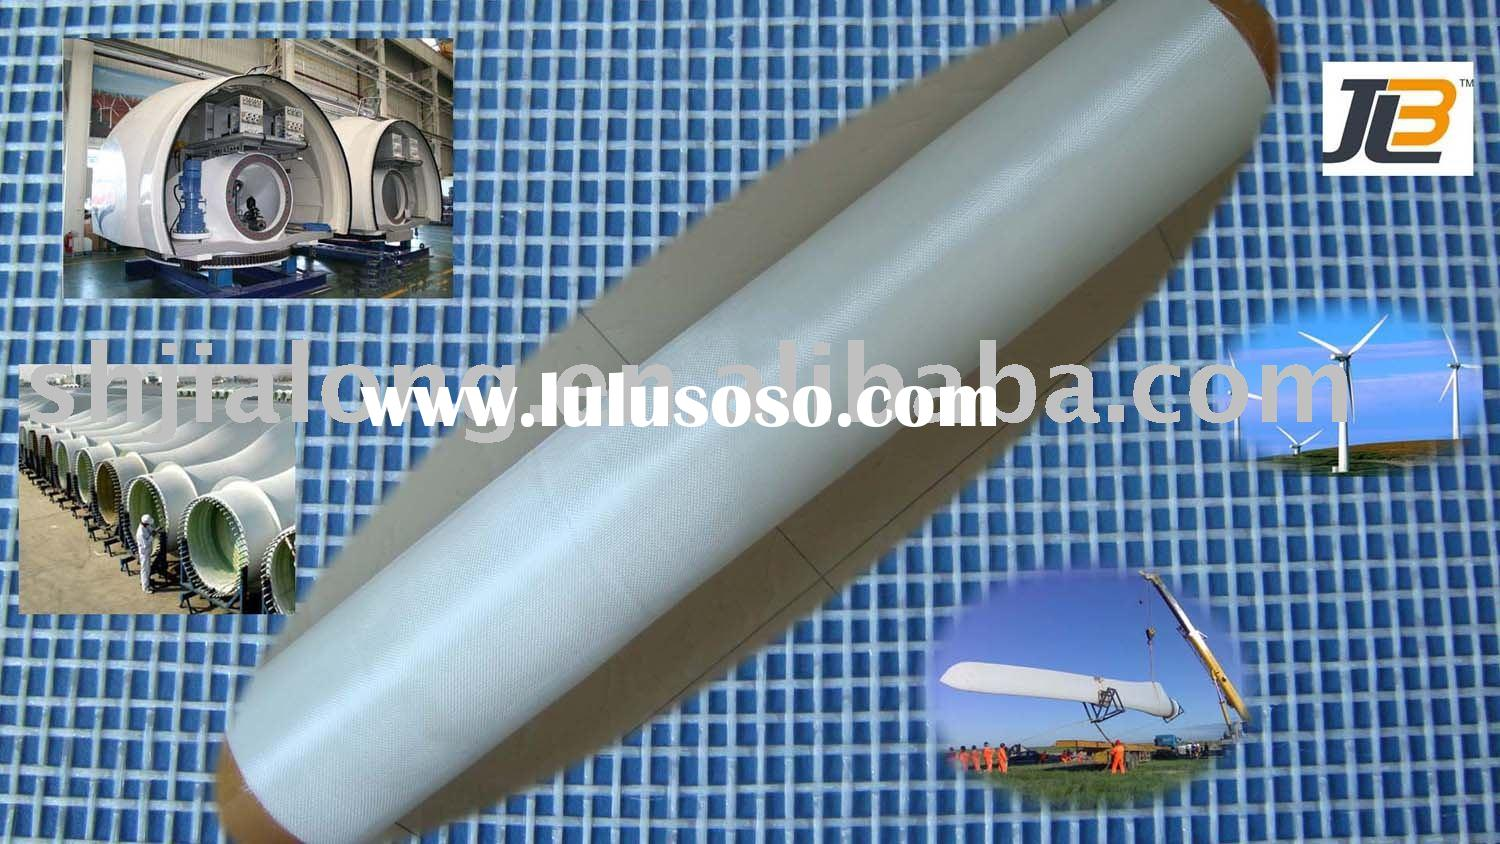 fiberglass mesh fabric, for moulding wind turbine blades, JLF-606 ROHS & ISO9001:2000